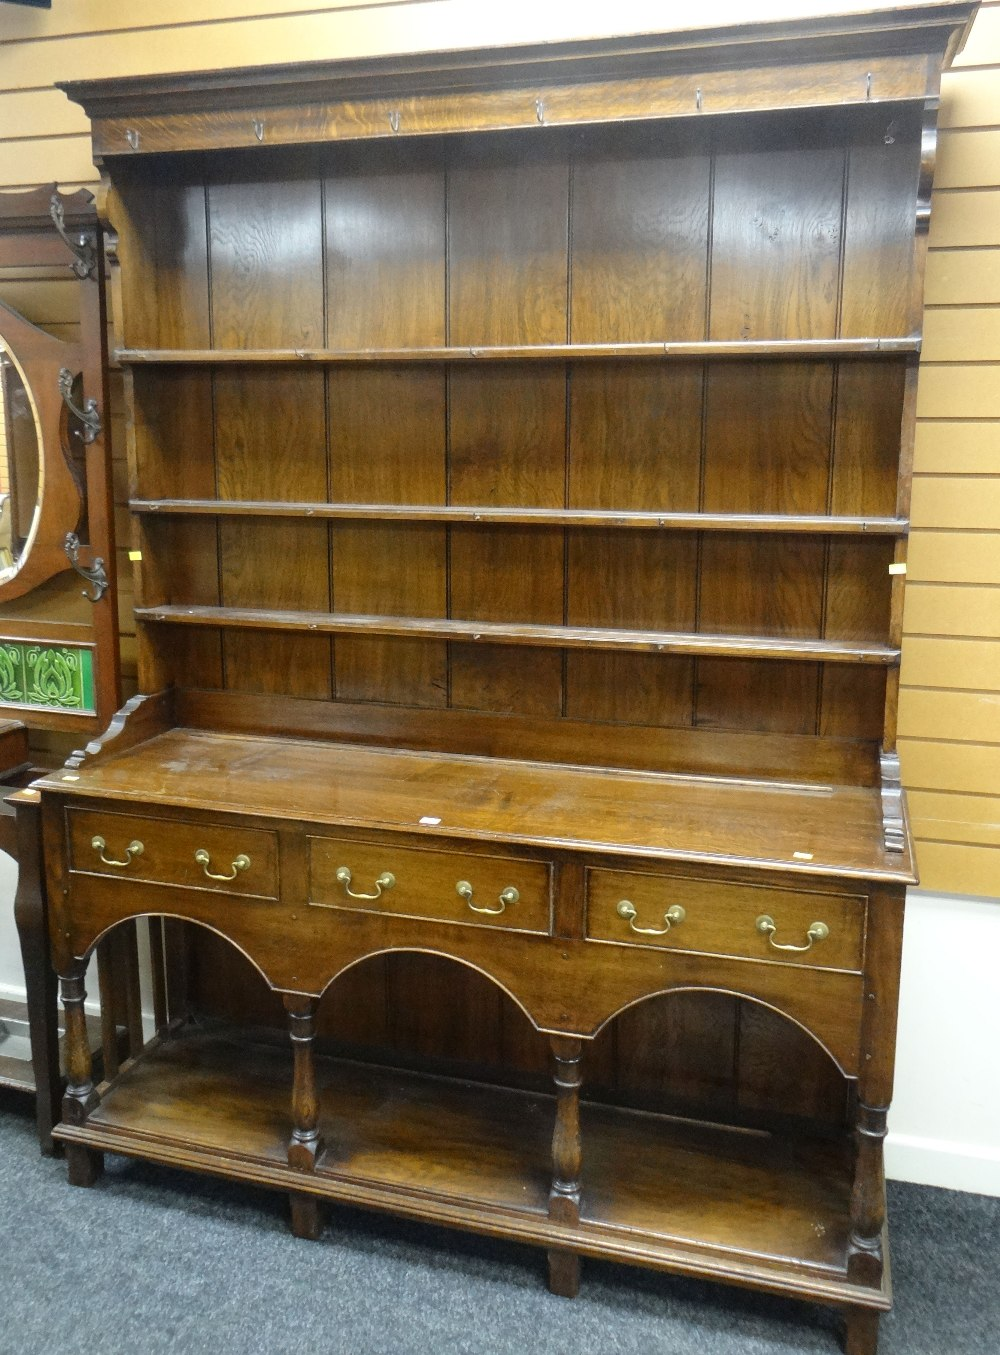 Lot 25 - 20TH CENTURY OAK WELSH DRESSER having an open base with arched frieze, three drawers and open